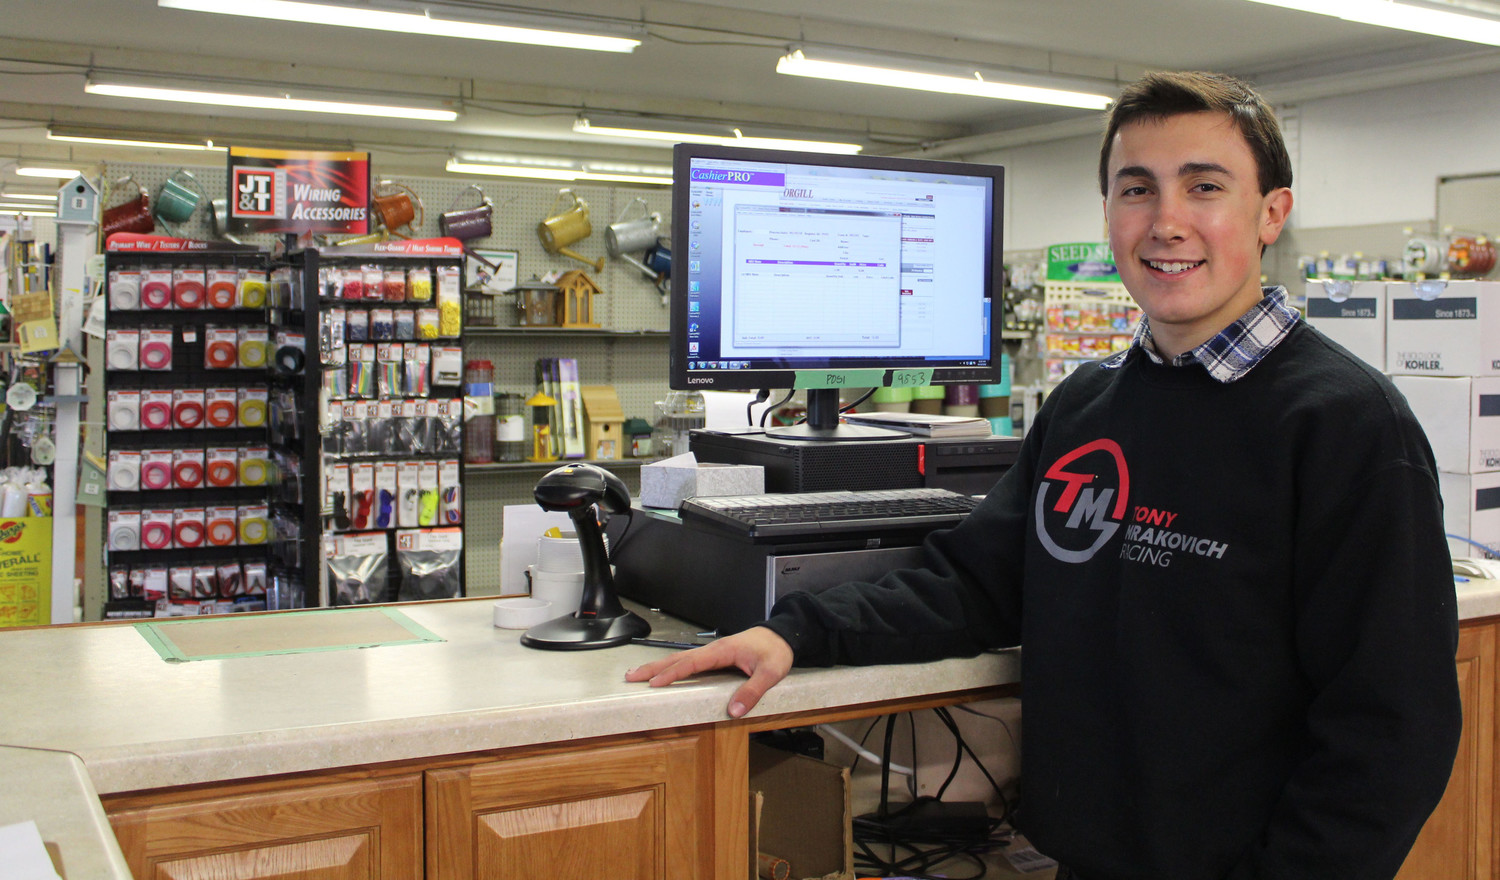 NASCAR racer Tony Mrakovich works behind the counter of his father's store Street Stores Hardware in Middletown.